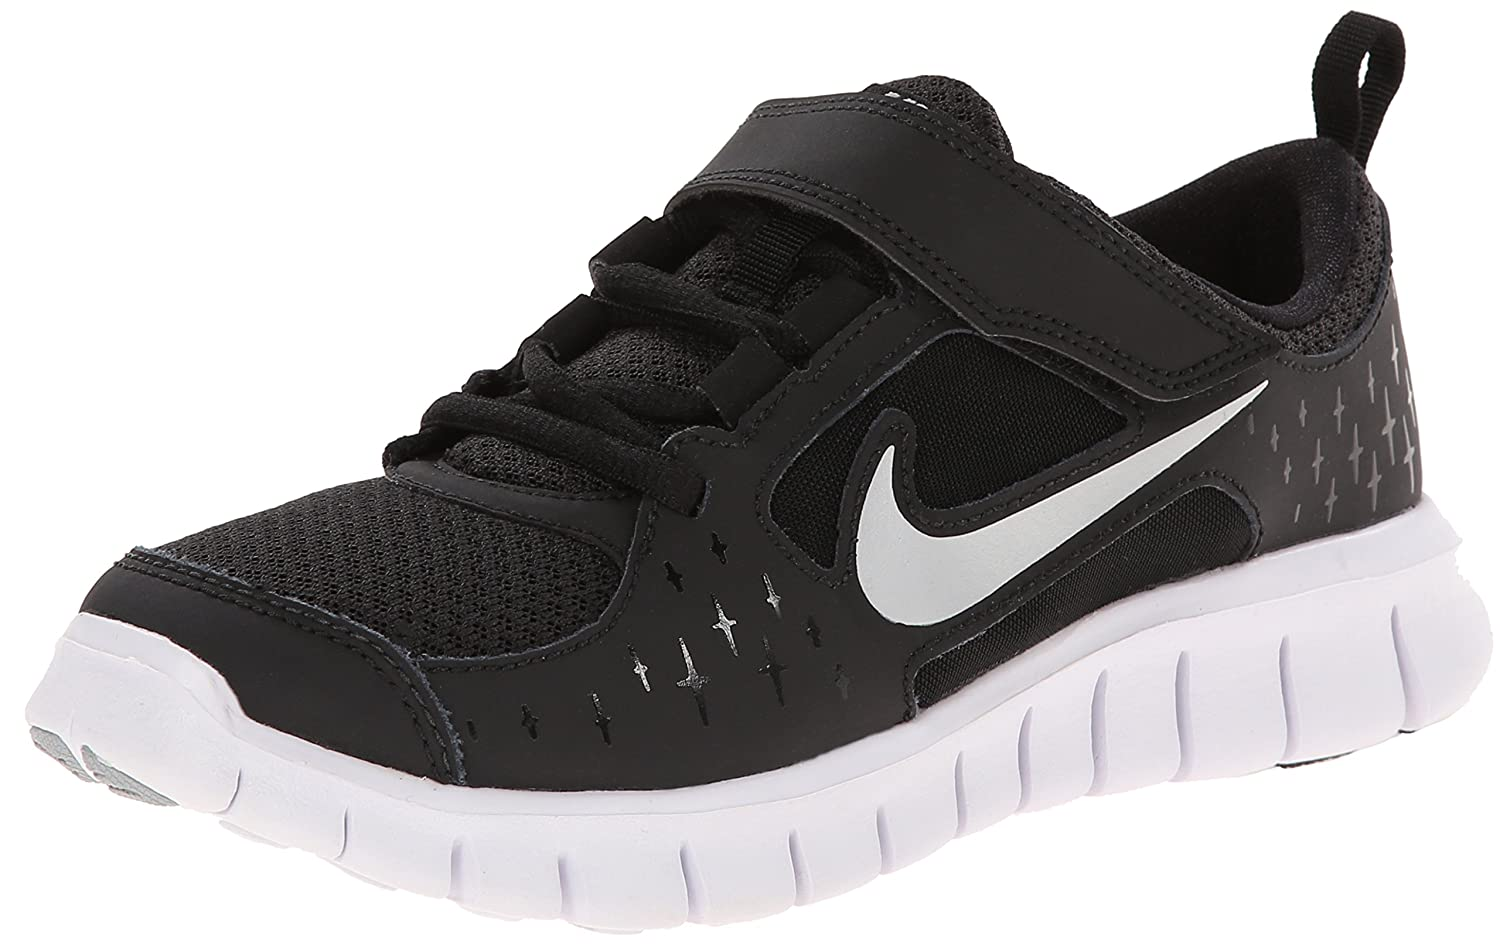 competitive price 76b69 bc7f3 Amazon.com   Nike FREE RUN 3 - Little Kids - Black White Wolf Grey Reflect  Silver (2.5)   Running